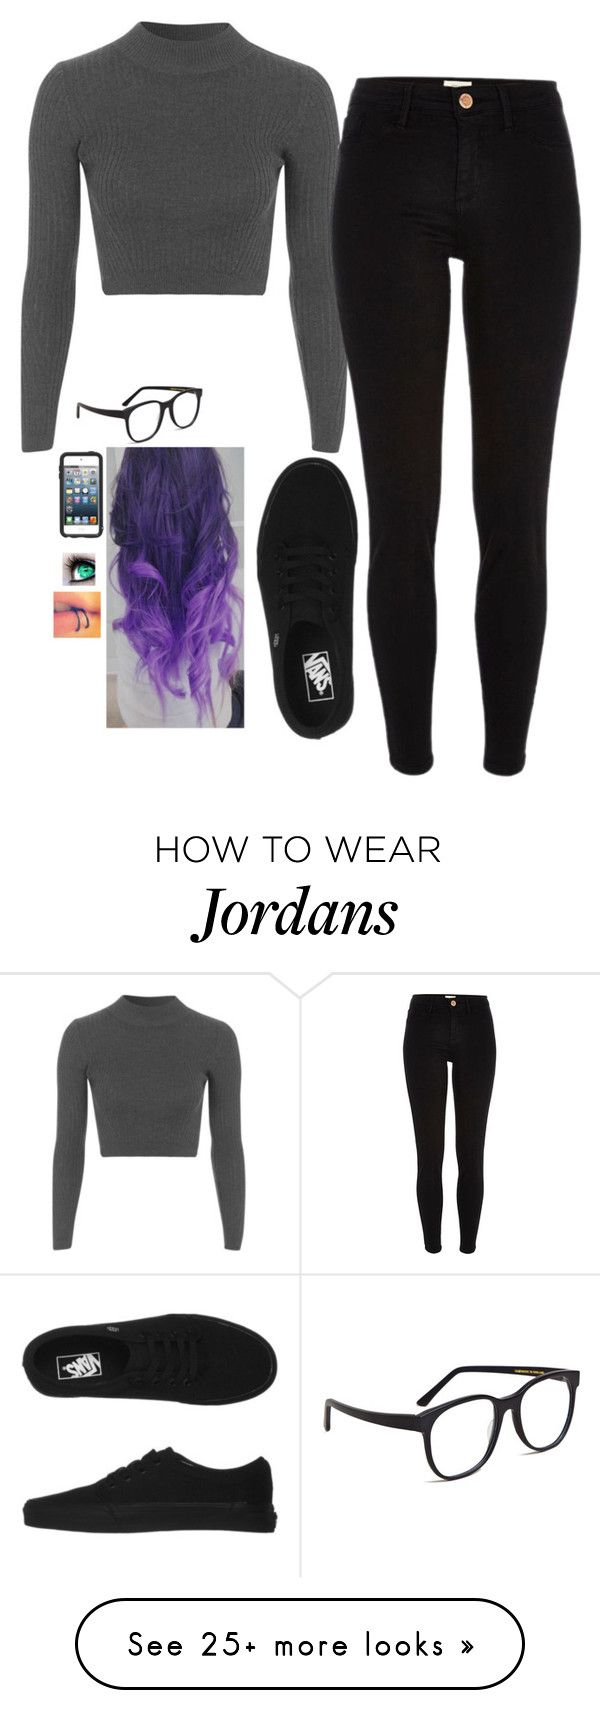 """""""Untitled #807"""" by erika-demass on Polyvore featuring Topshop, River Island, Vans, Larke and OtterBox"""